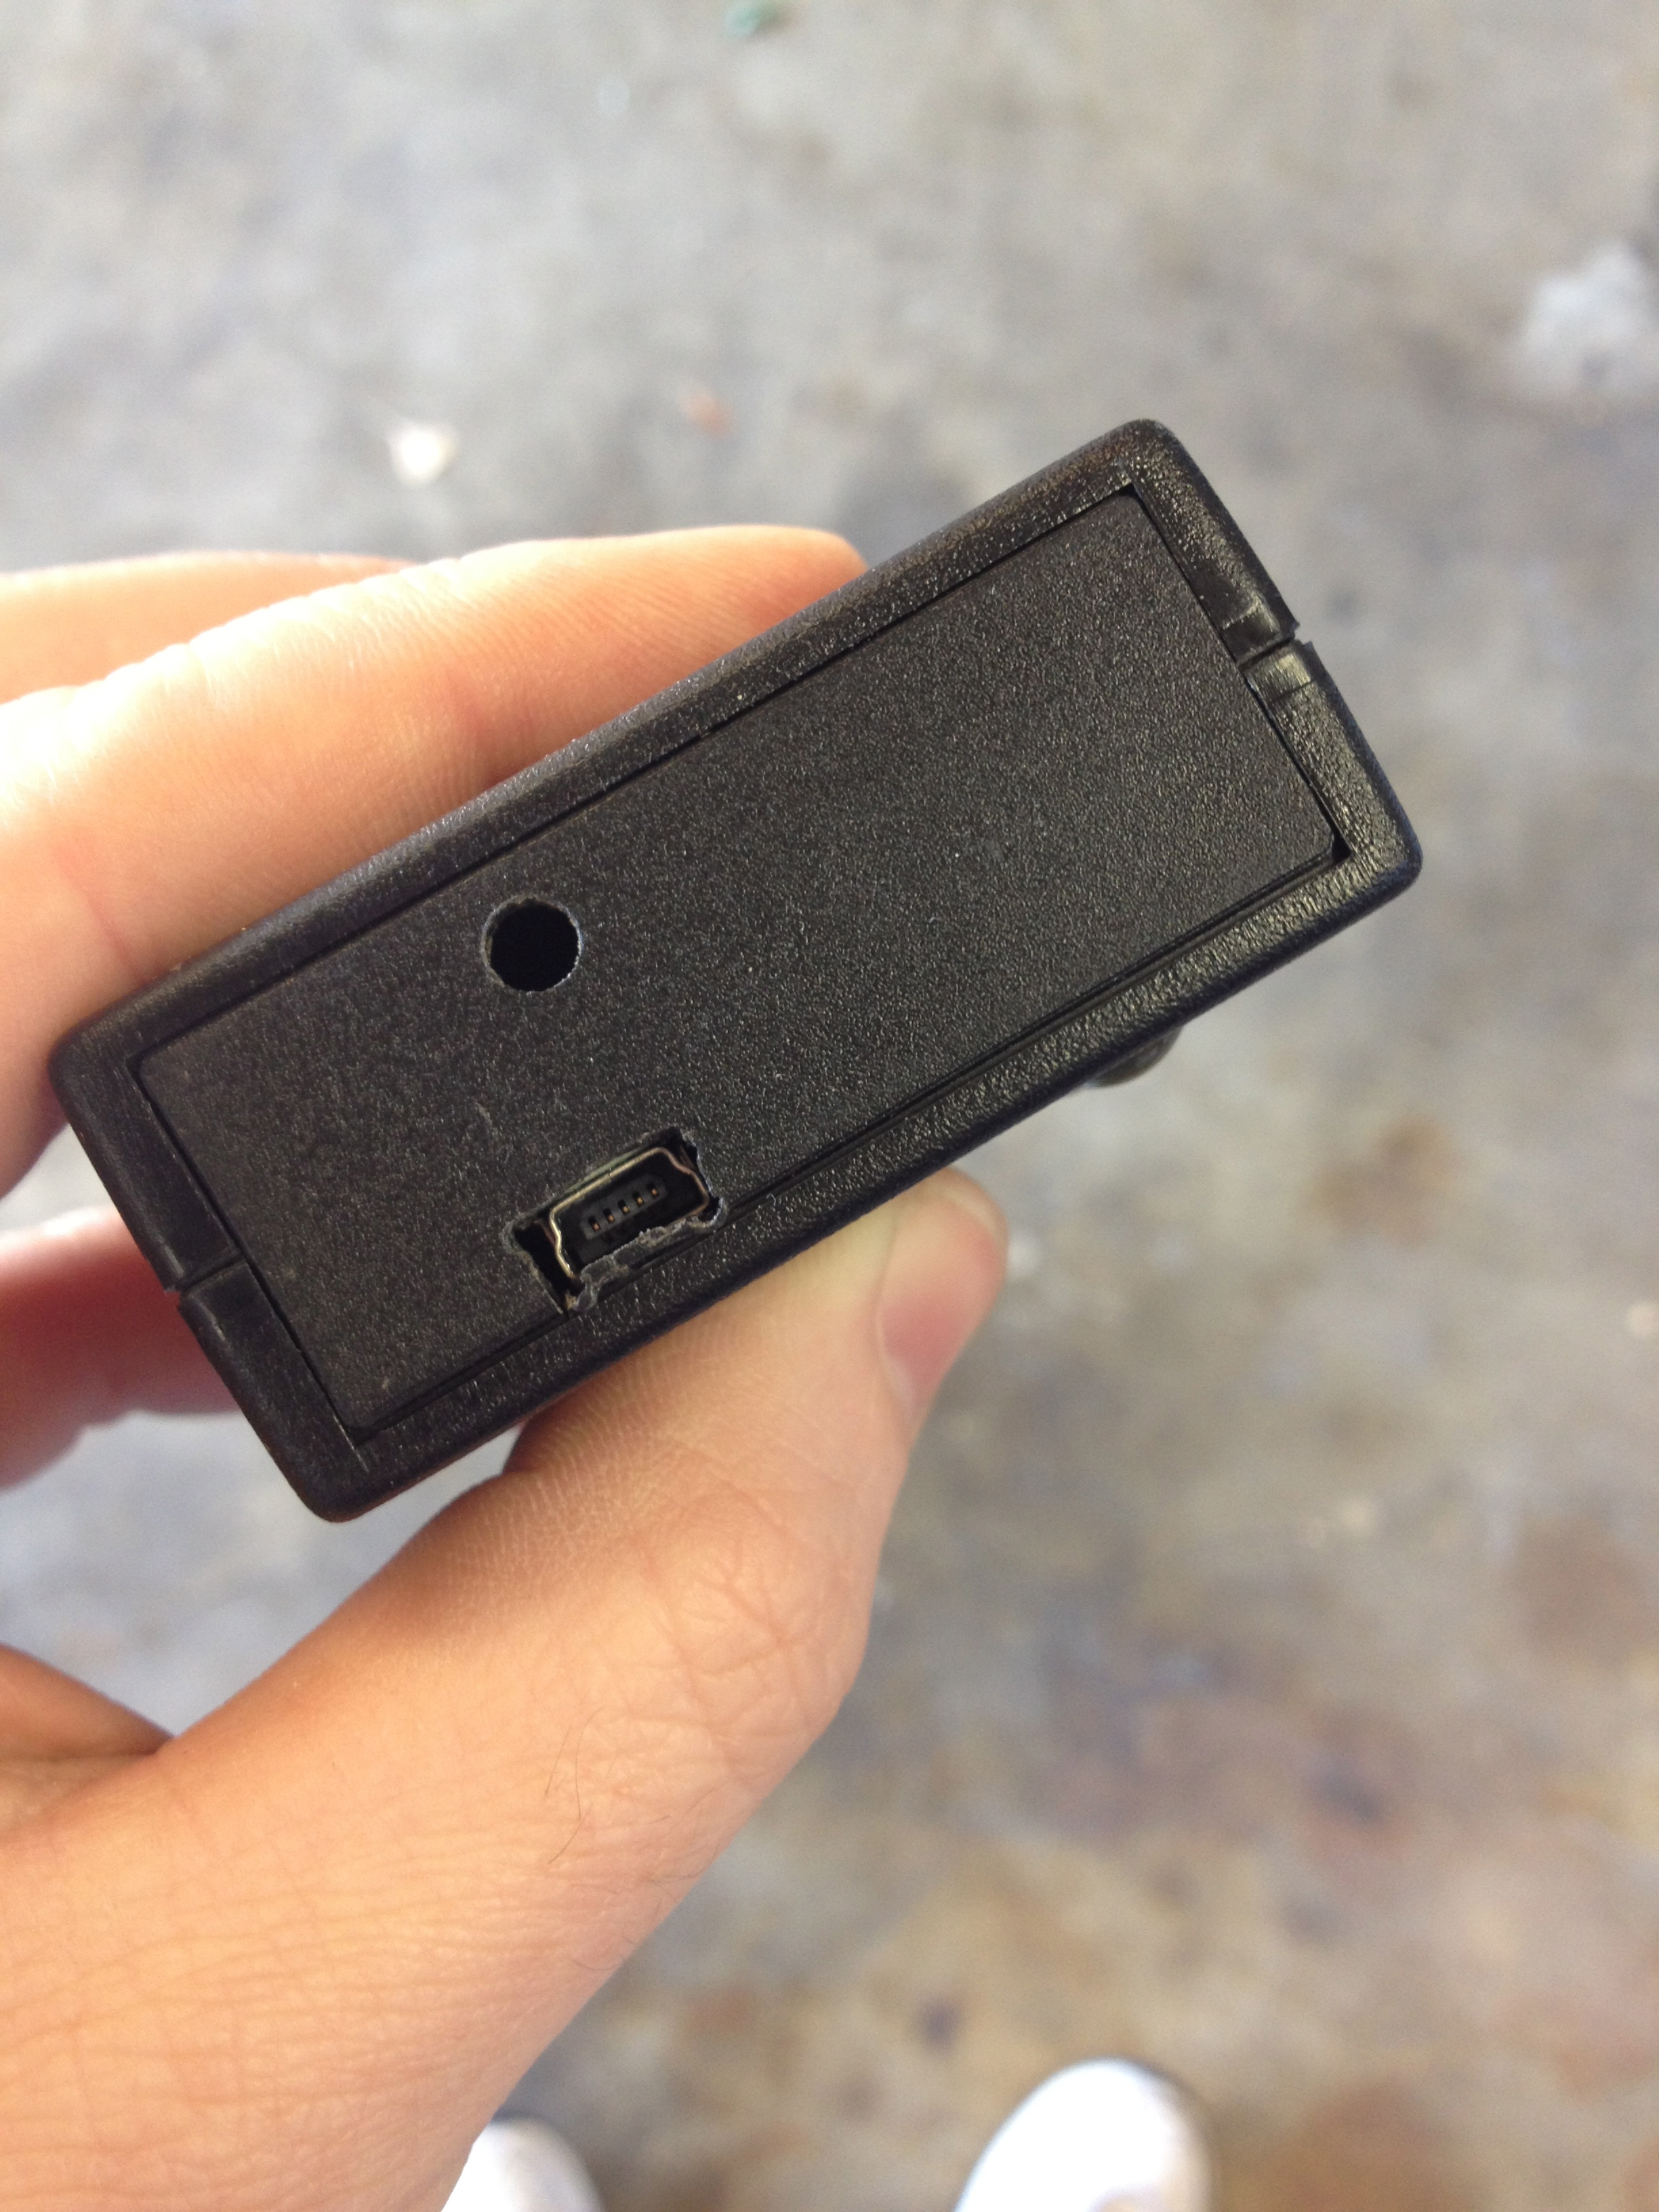 SV650 Ecu Decoder v1 Side Enclosure